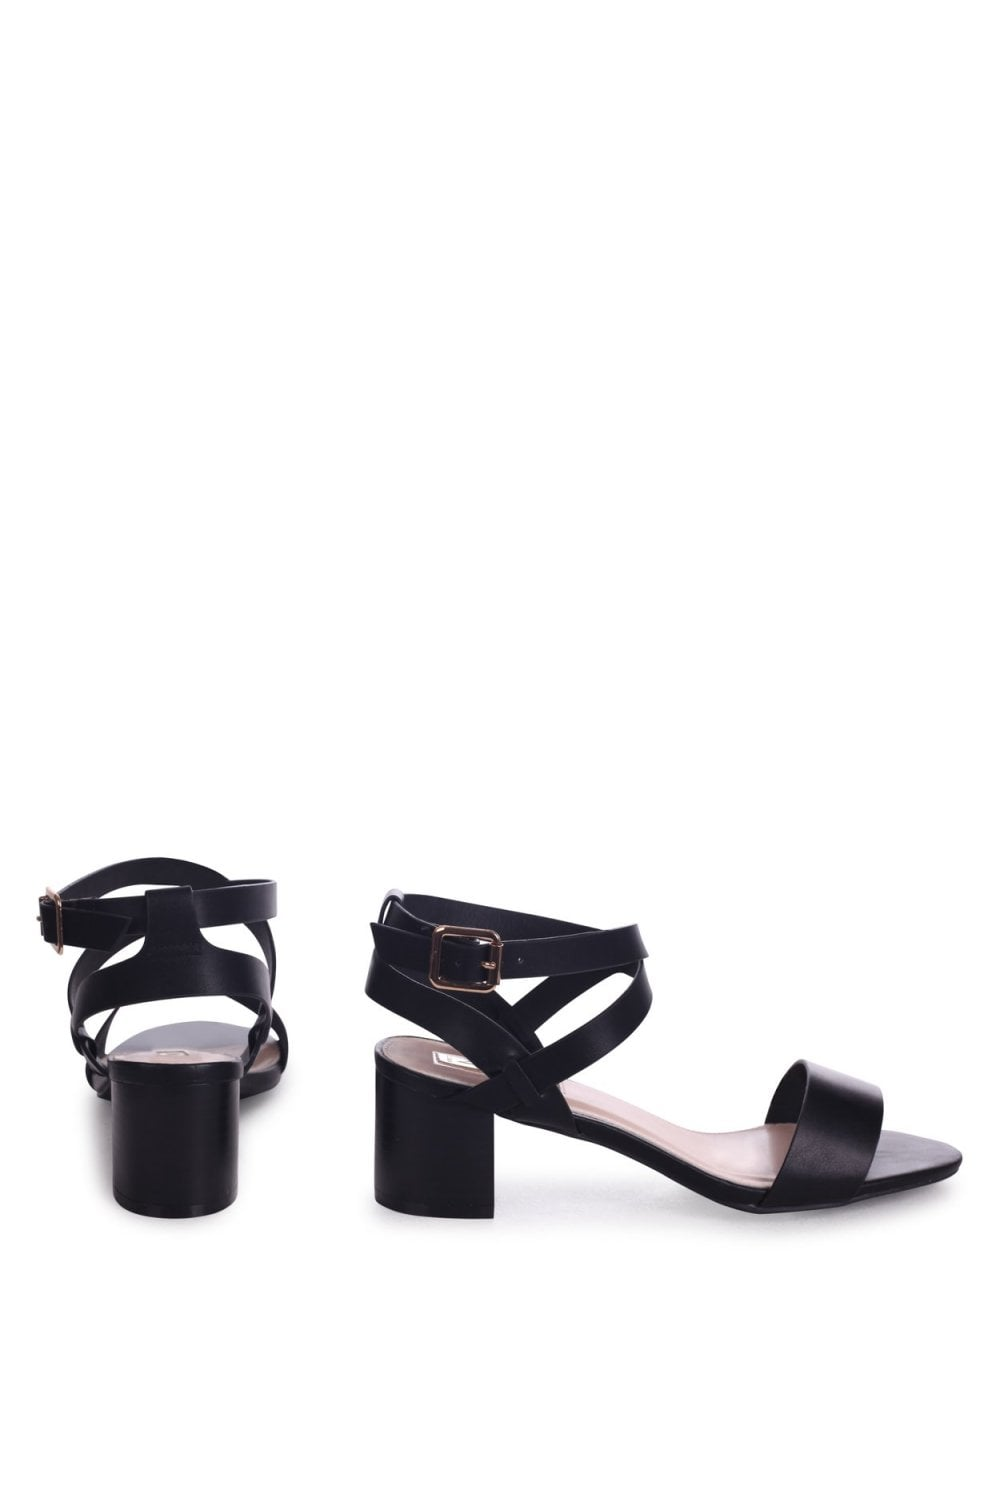 6de93653133 Linzi SERENA - Black Nappa Stacked Block Heel Sandal With Crossover Ankle  Straps - Linzi from Little Mistress UK